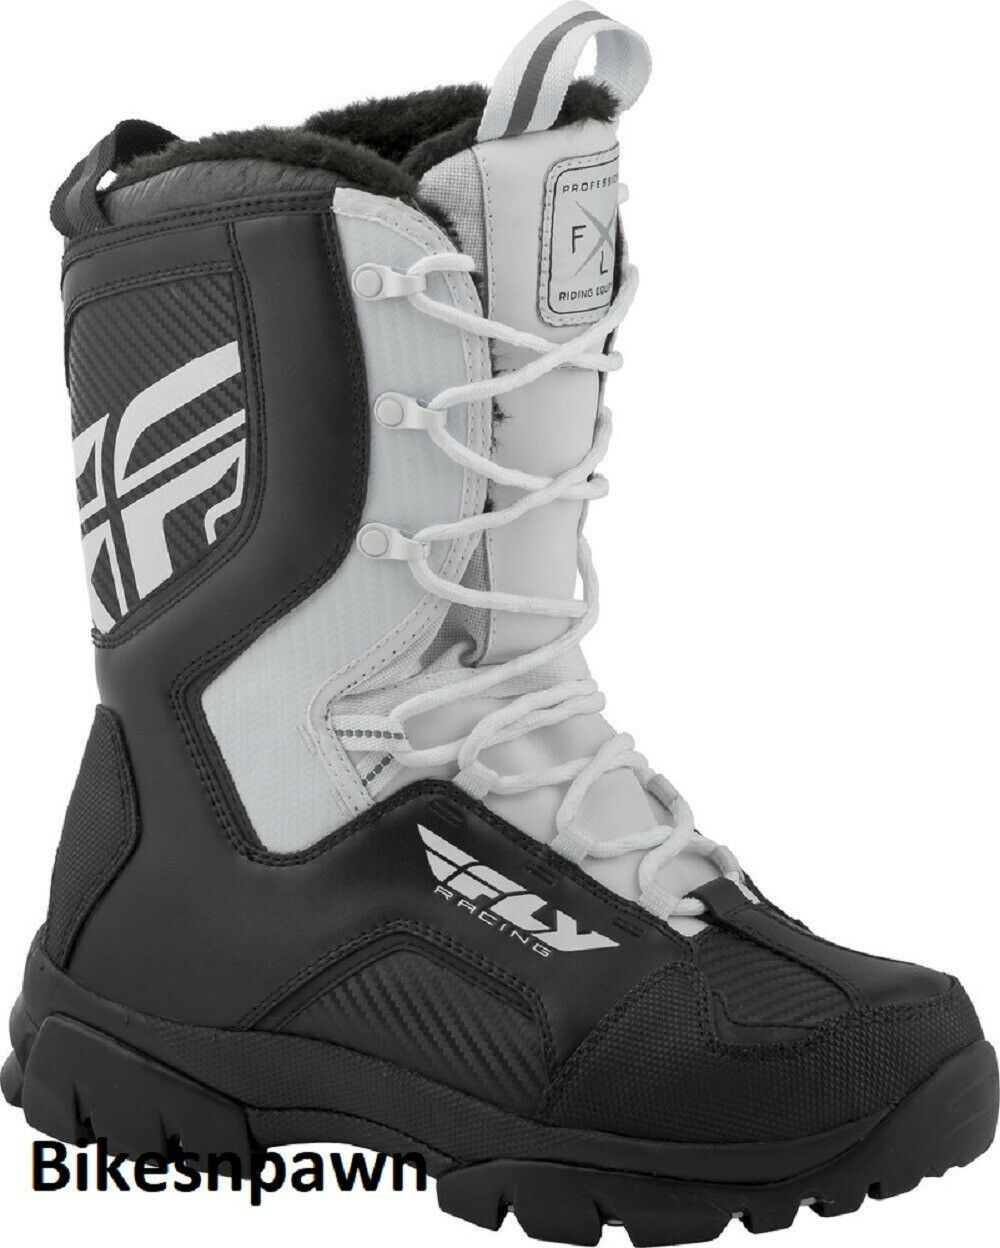 New Mens FLY Racing Marker Black/White Size 15 Snowmobile Winter Boots -40 F